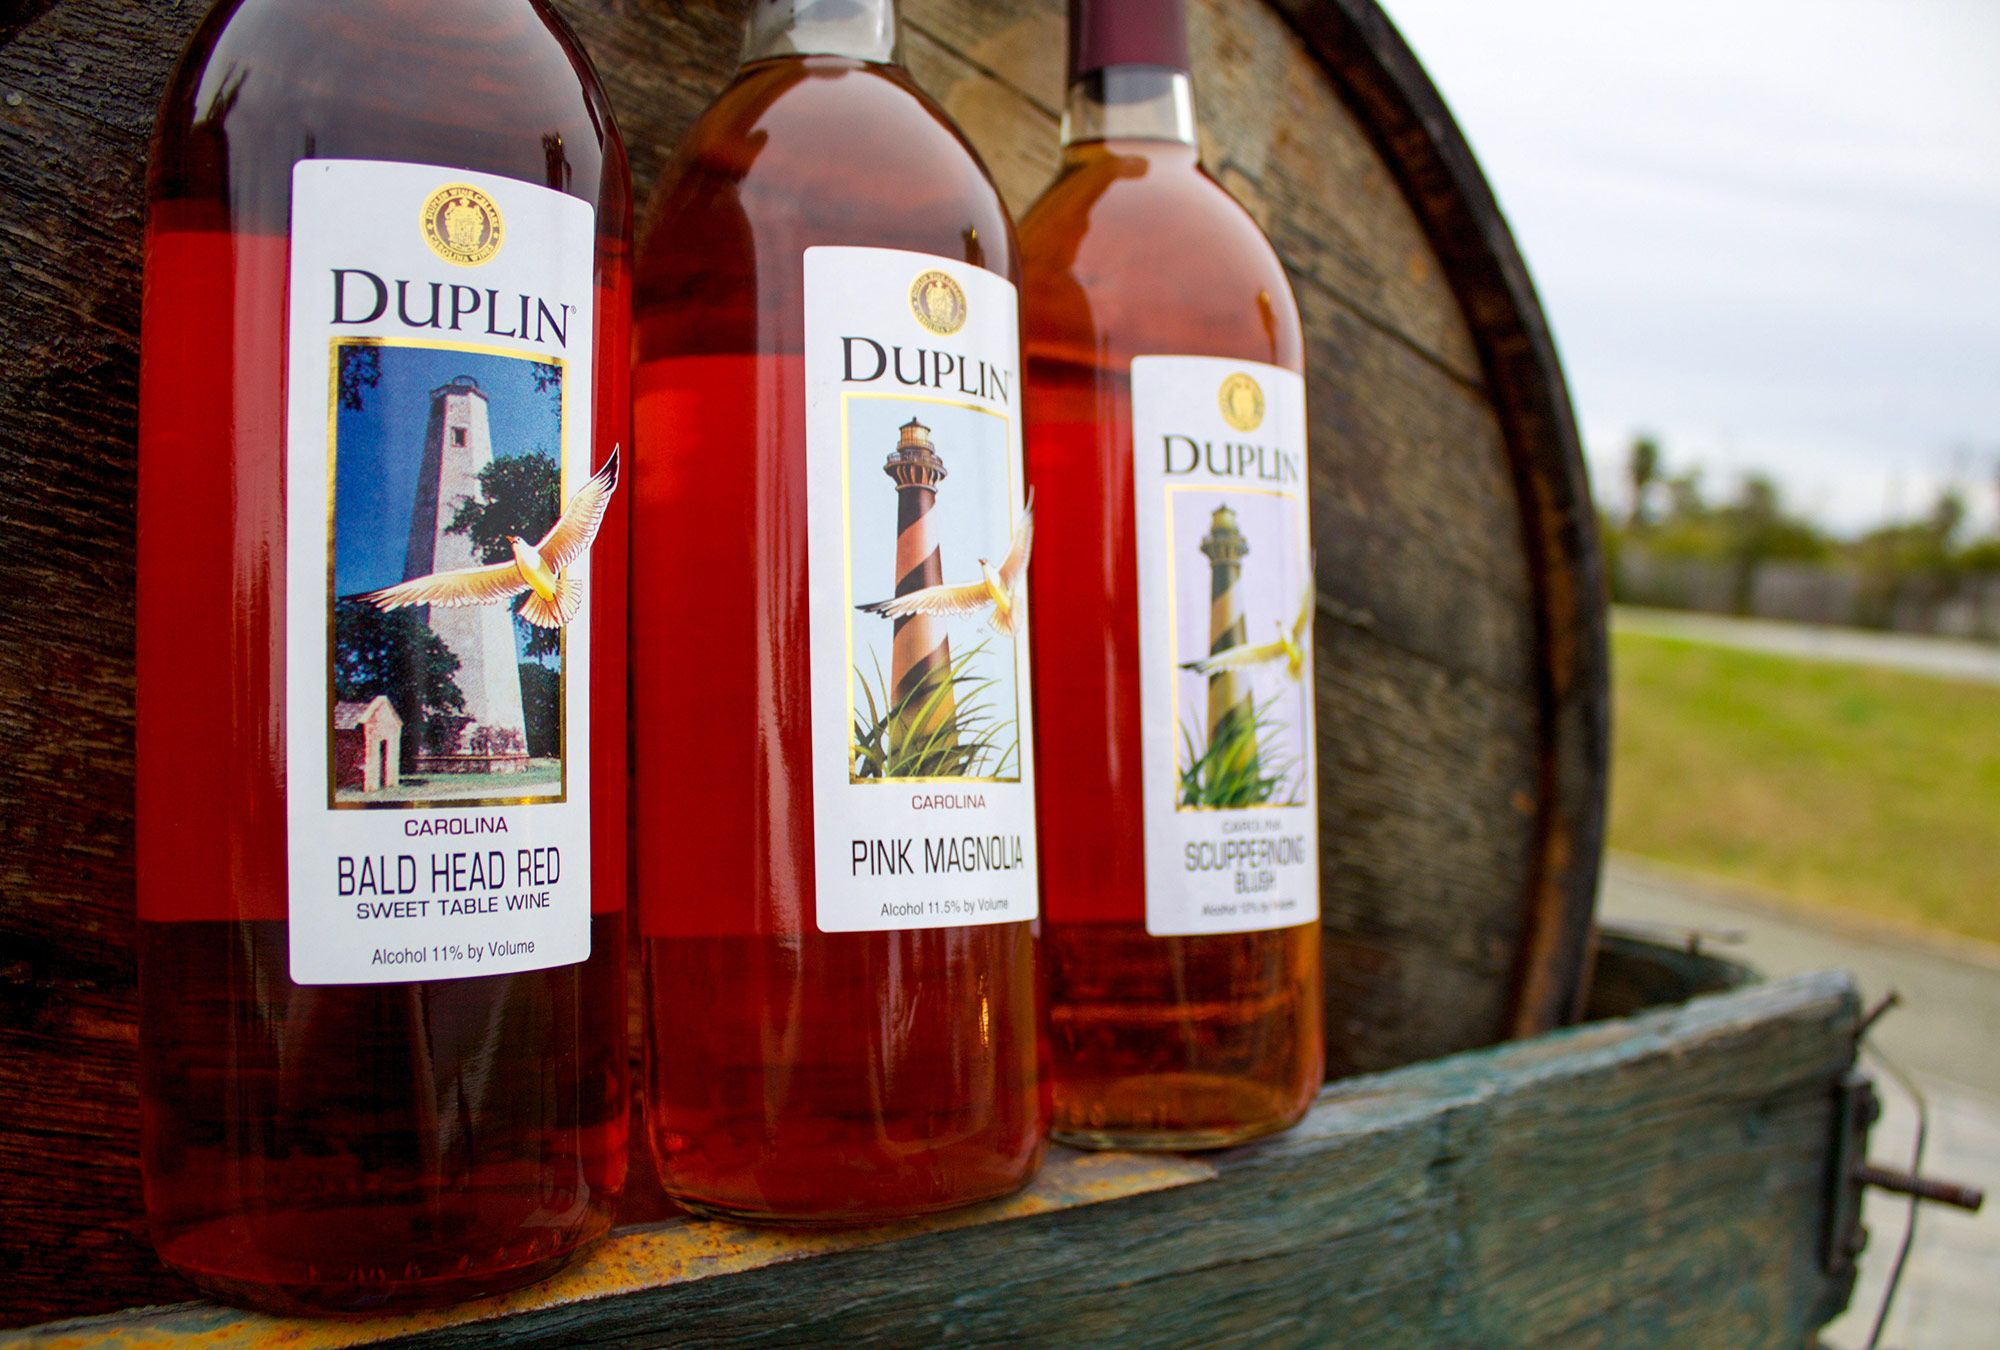 Duplin Winery Is The Oldest And Largest Winery And Vineyard In North Carolina Producing Award Winning Wines Since 1975 Sweet Wine Wines Muscadine Wine